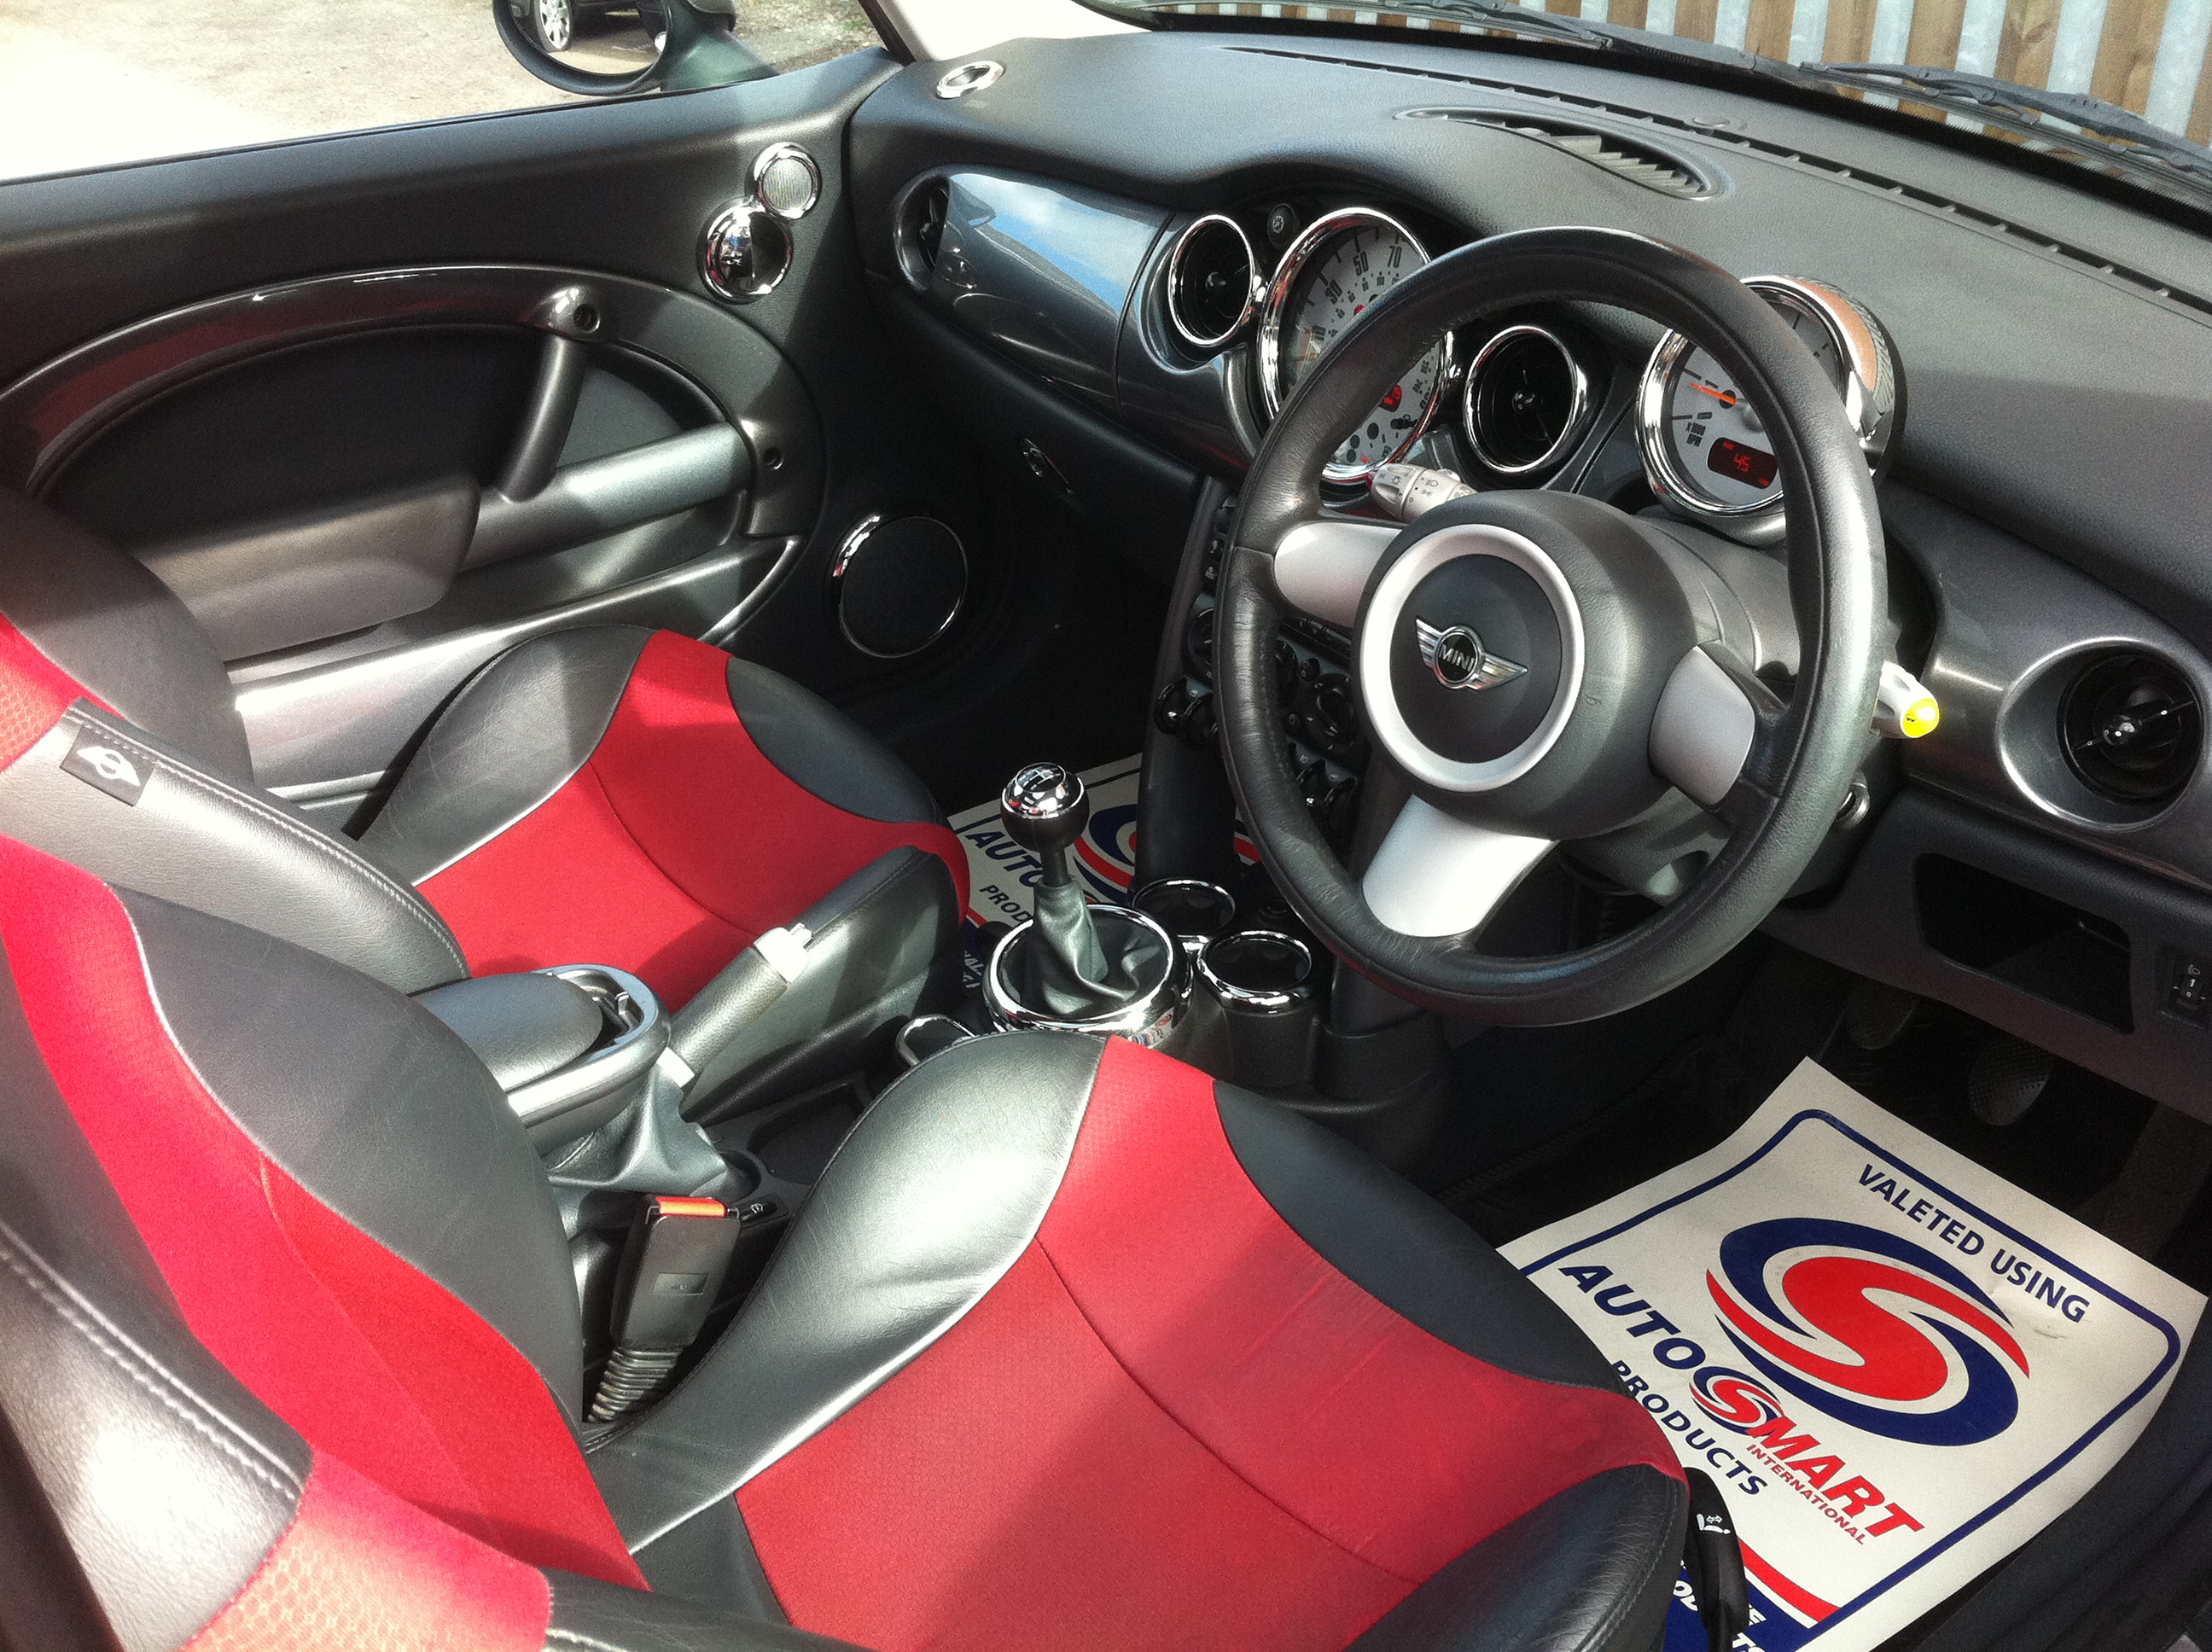 Bmw Owners Manual >> MINI COOPER 1.6 3DR HATCHBACK FULL SERVICE HISTORY/CHILLI PACK/PANORAMIC SUNROOF/HALF LEATHER/A ...